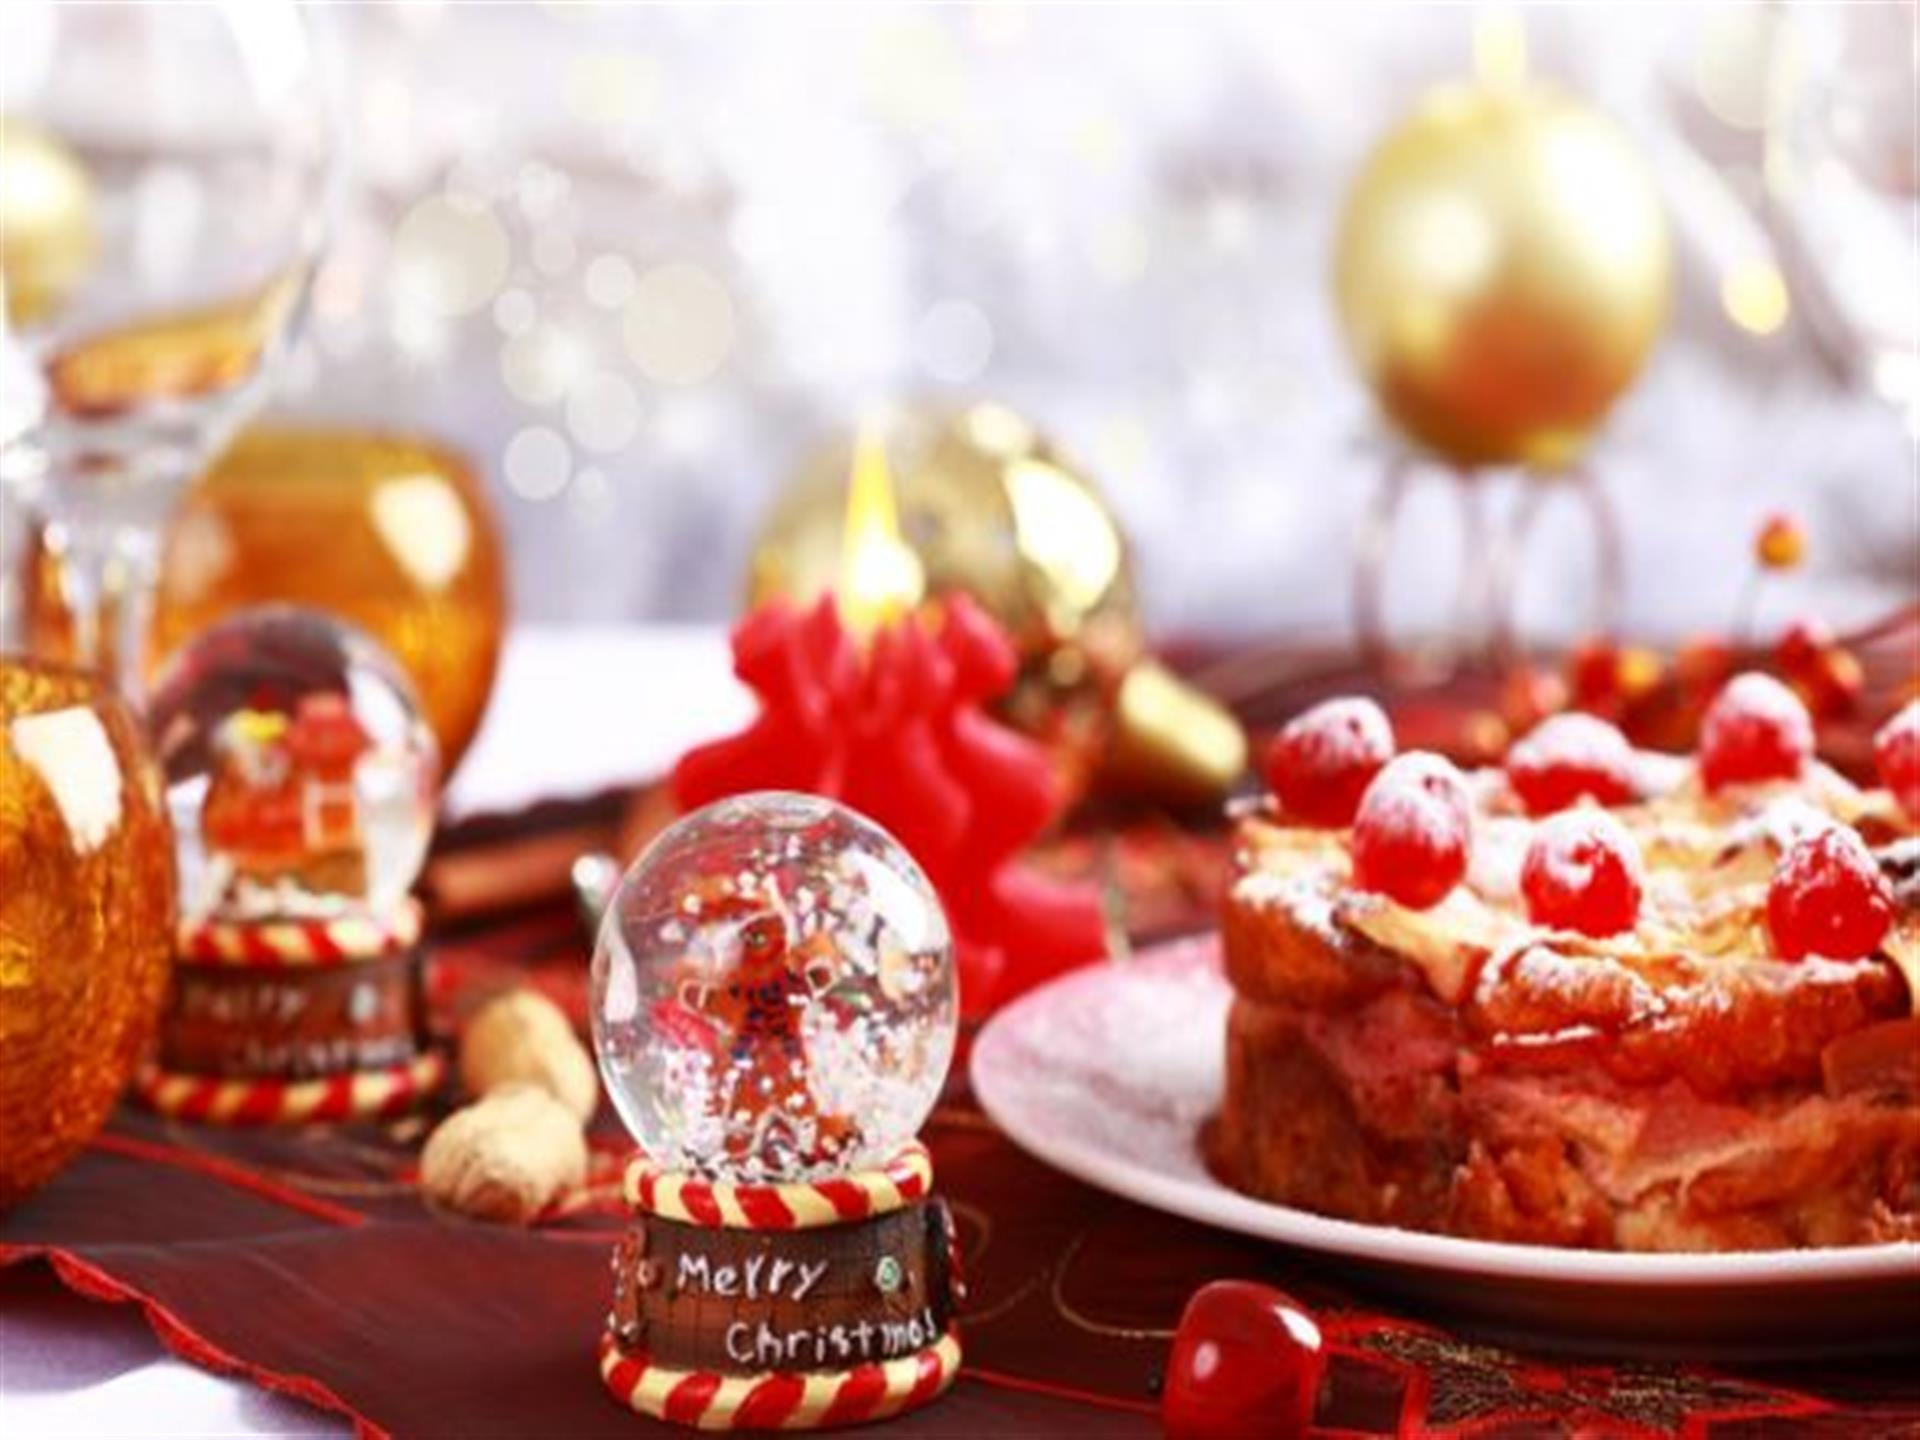 Festive holiday table with snowglobes and a cake.